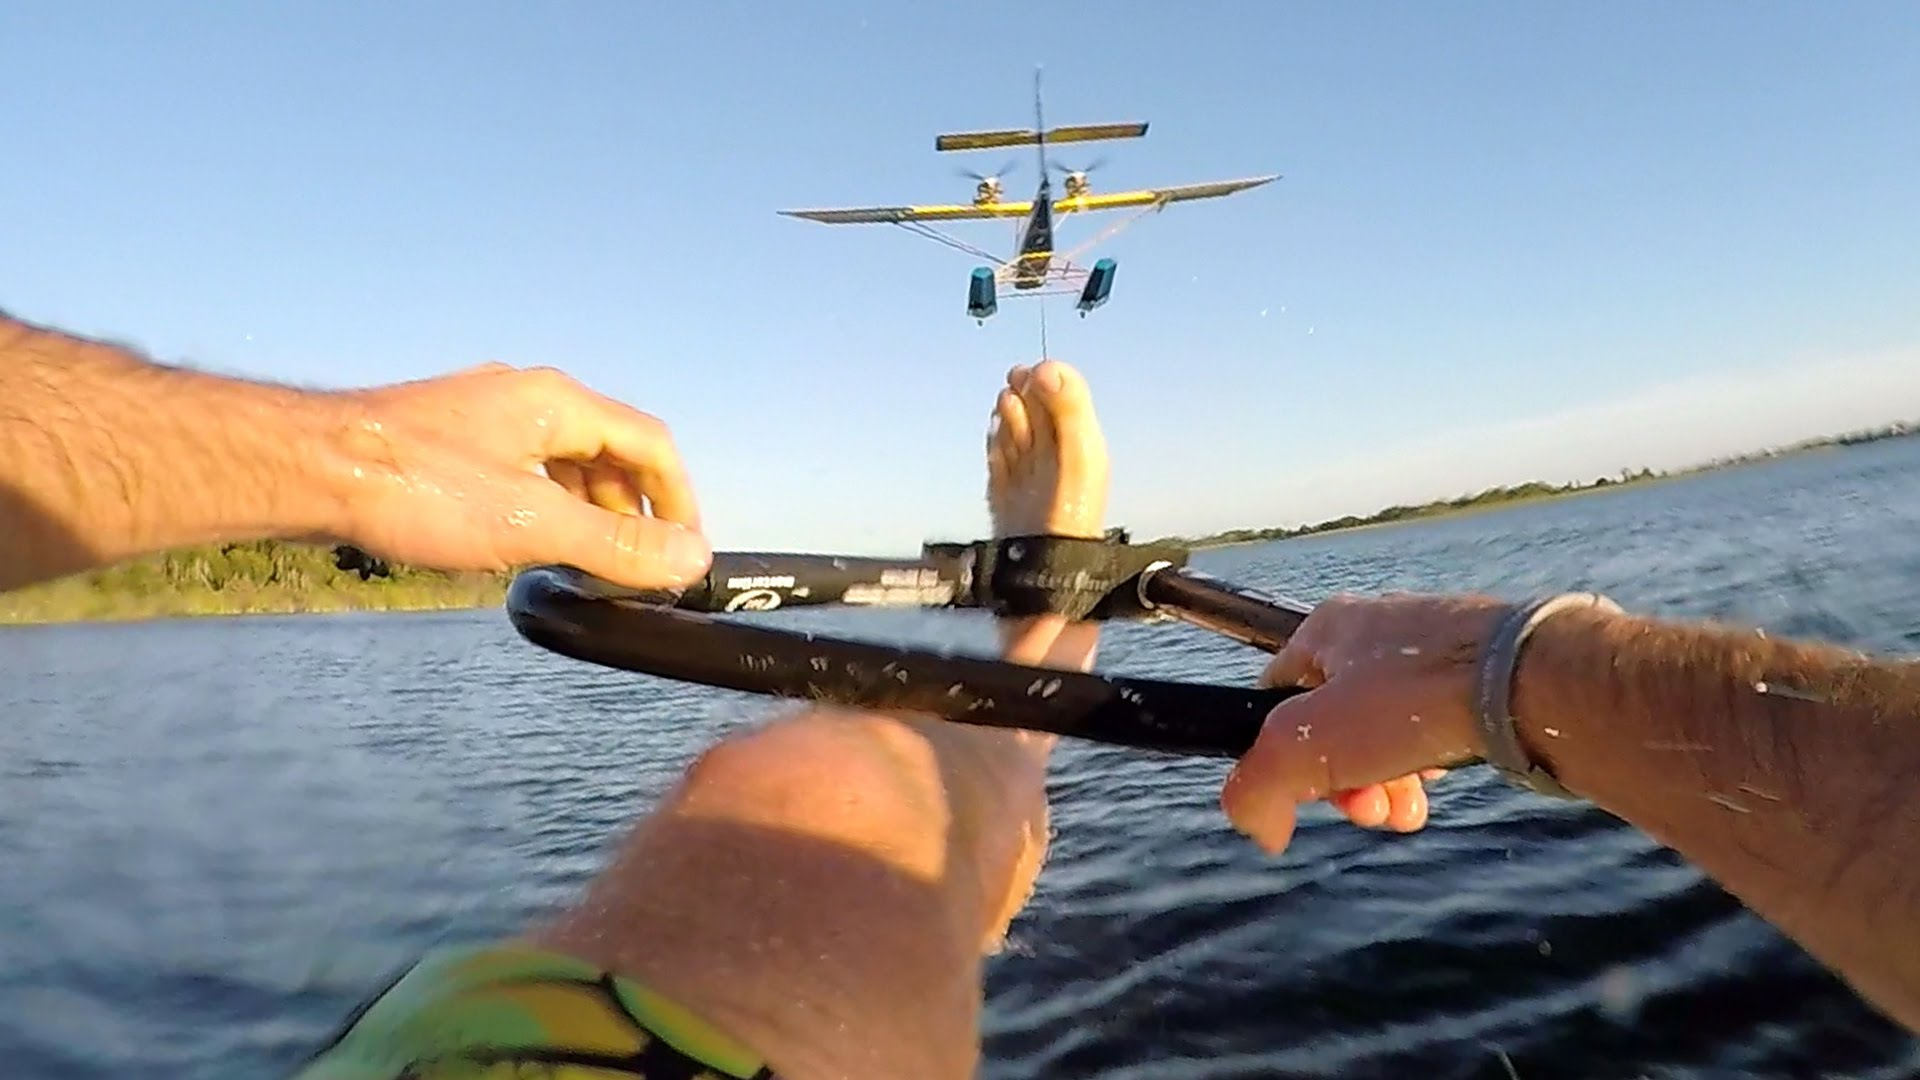 Summer Inspiration: GoPro: Barefoot Airplane Waterskiing